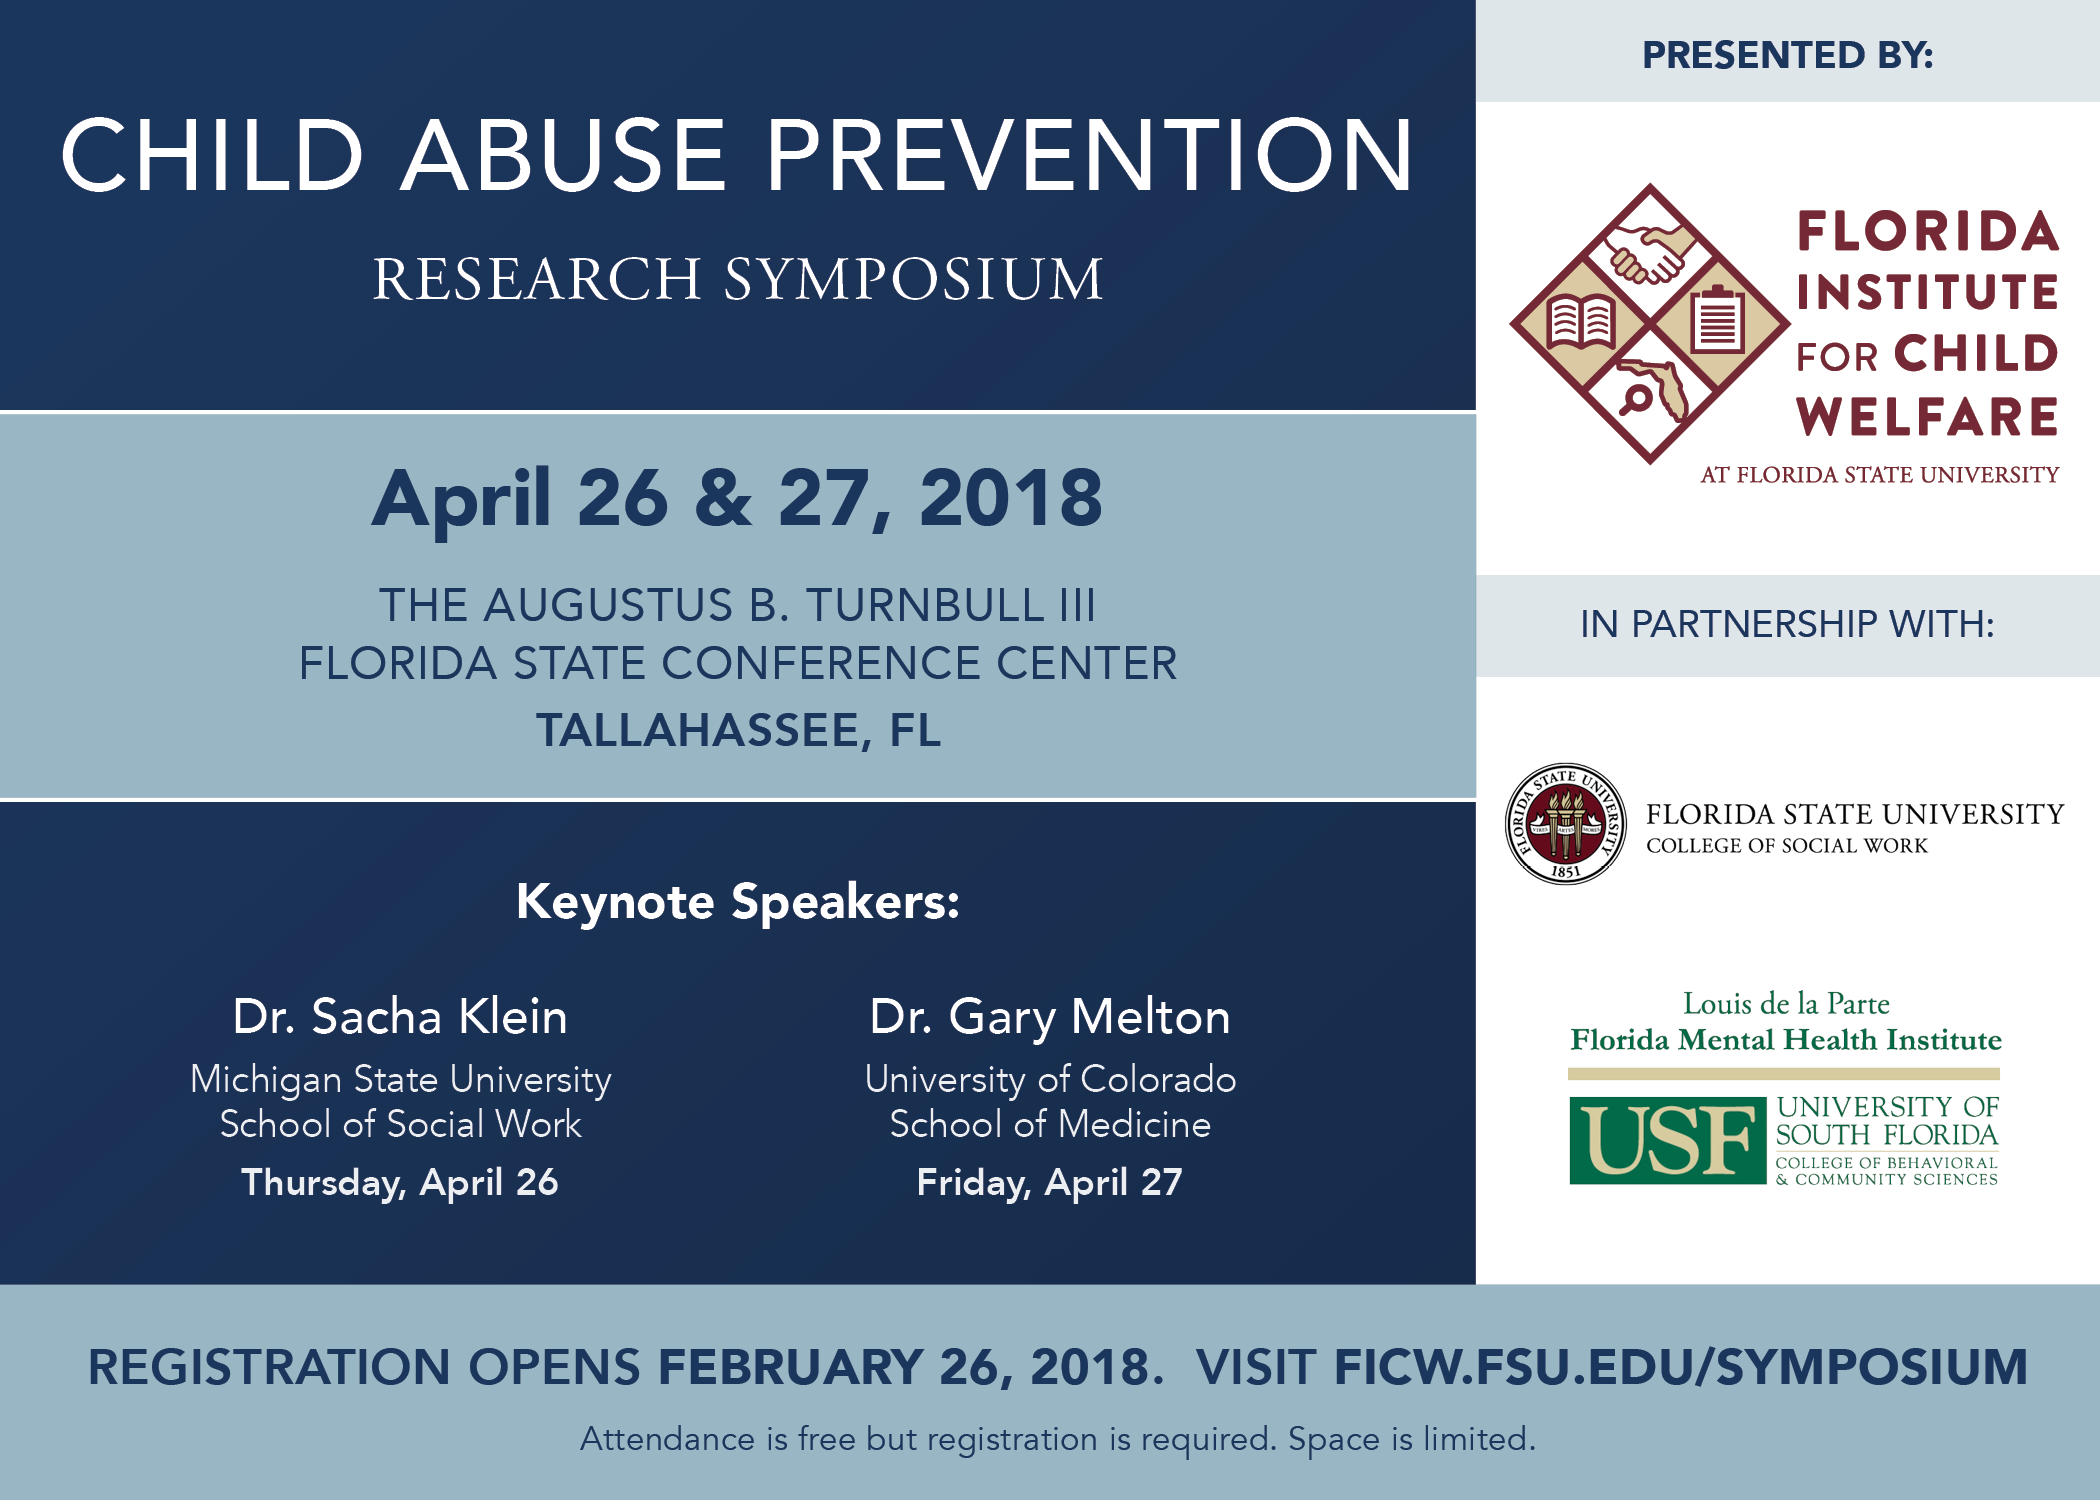 Child Abuse Prevention Research Symposium